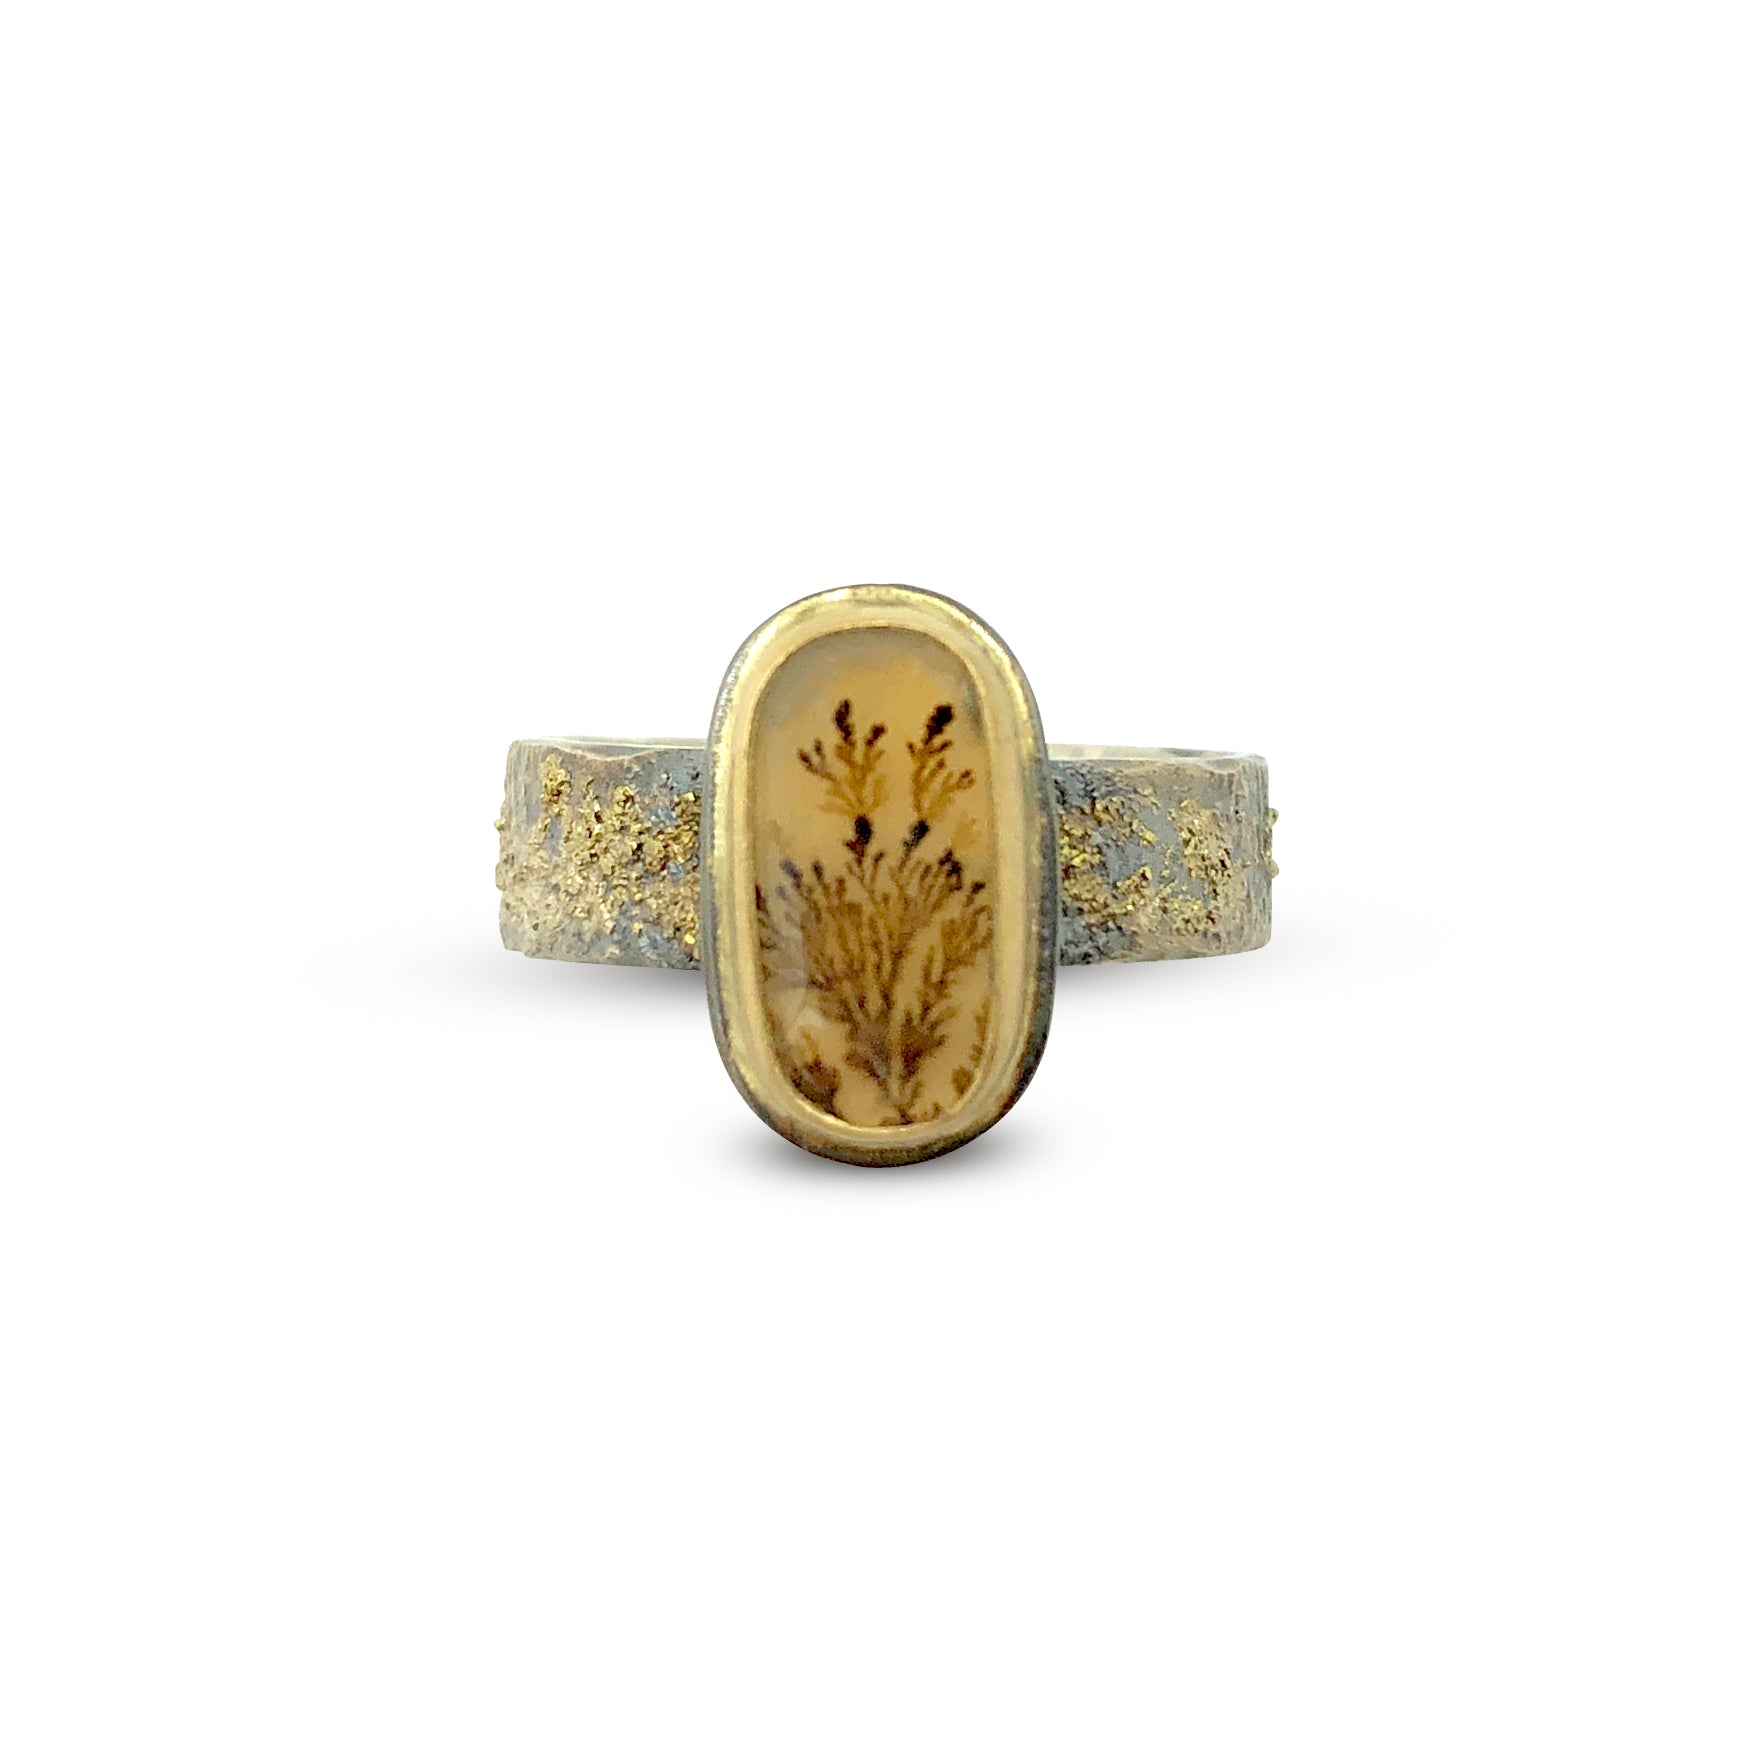 Dendritic Agate Cabochon Ring